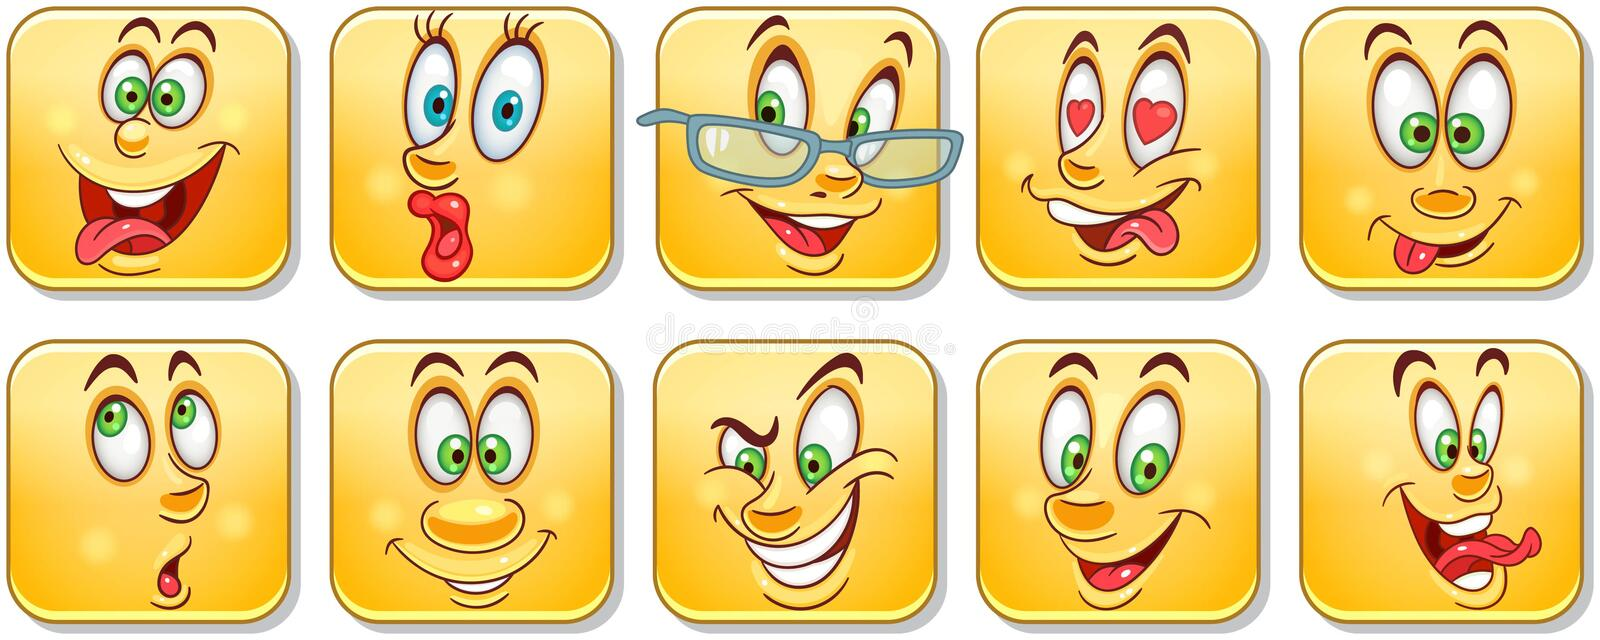 Cartoon faces collection. Emoticons. Smiley. Emoji stock images